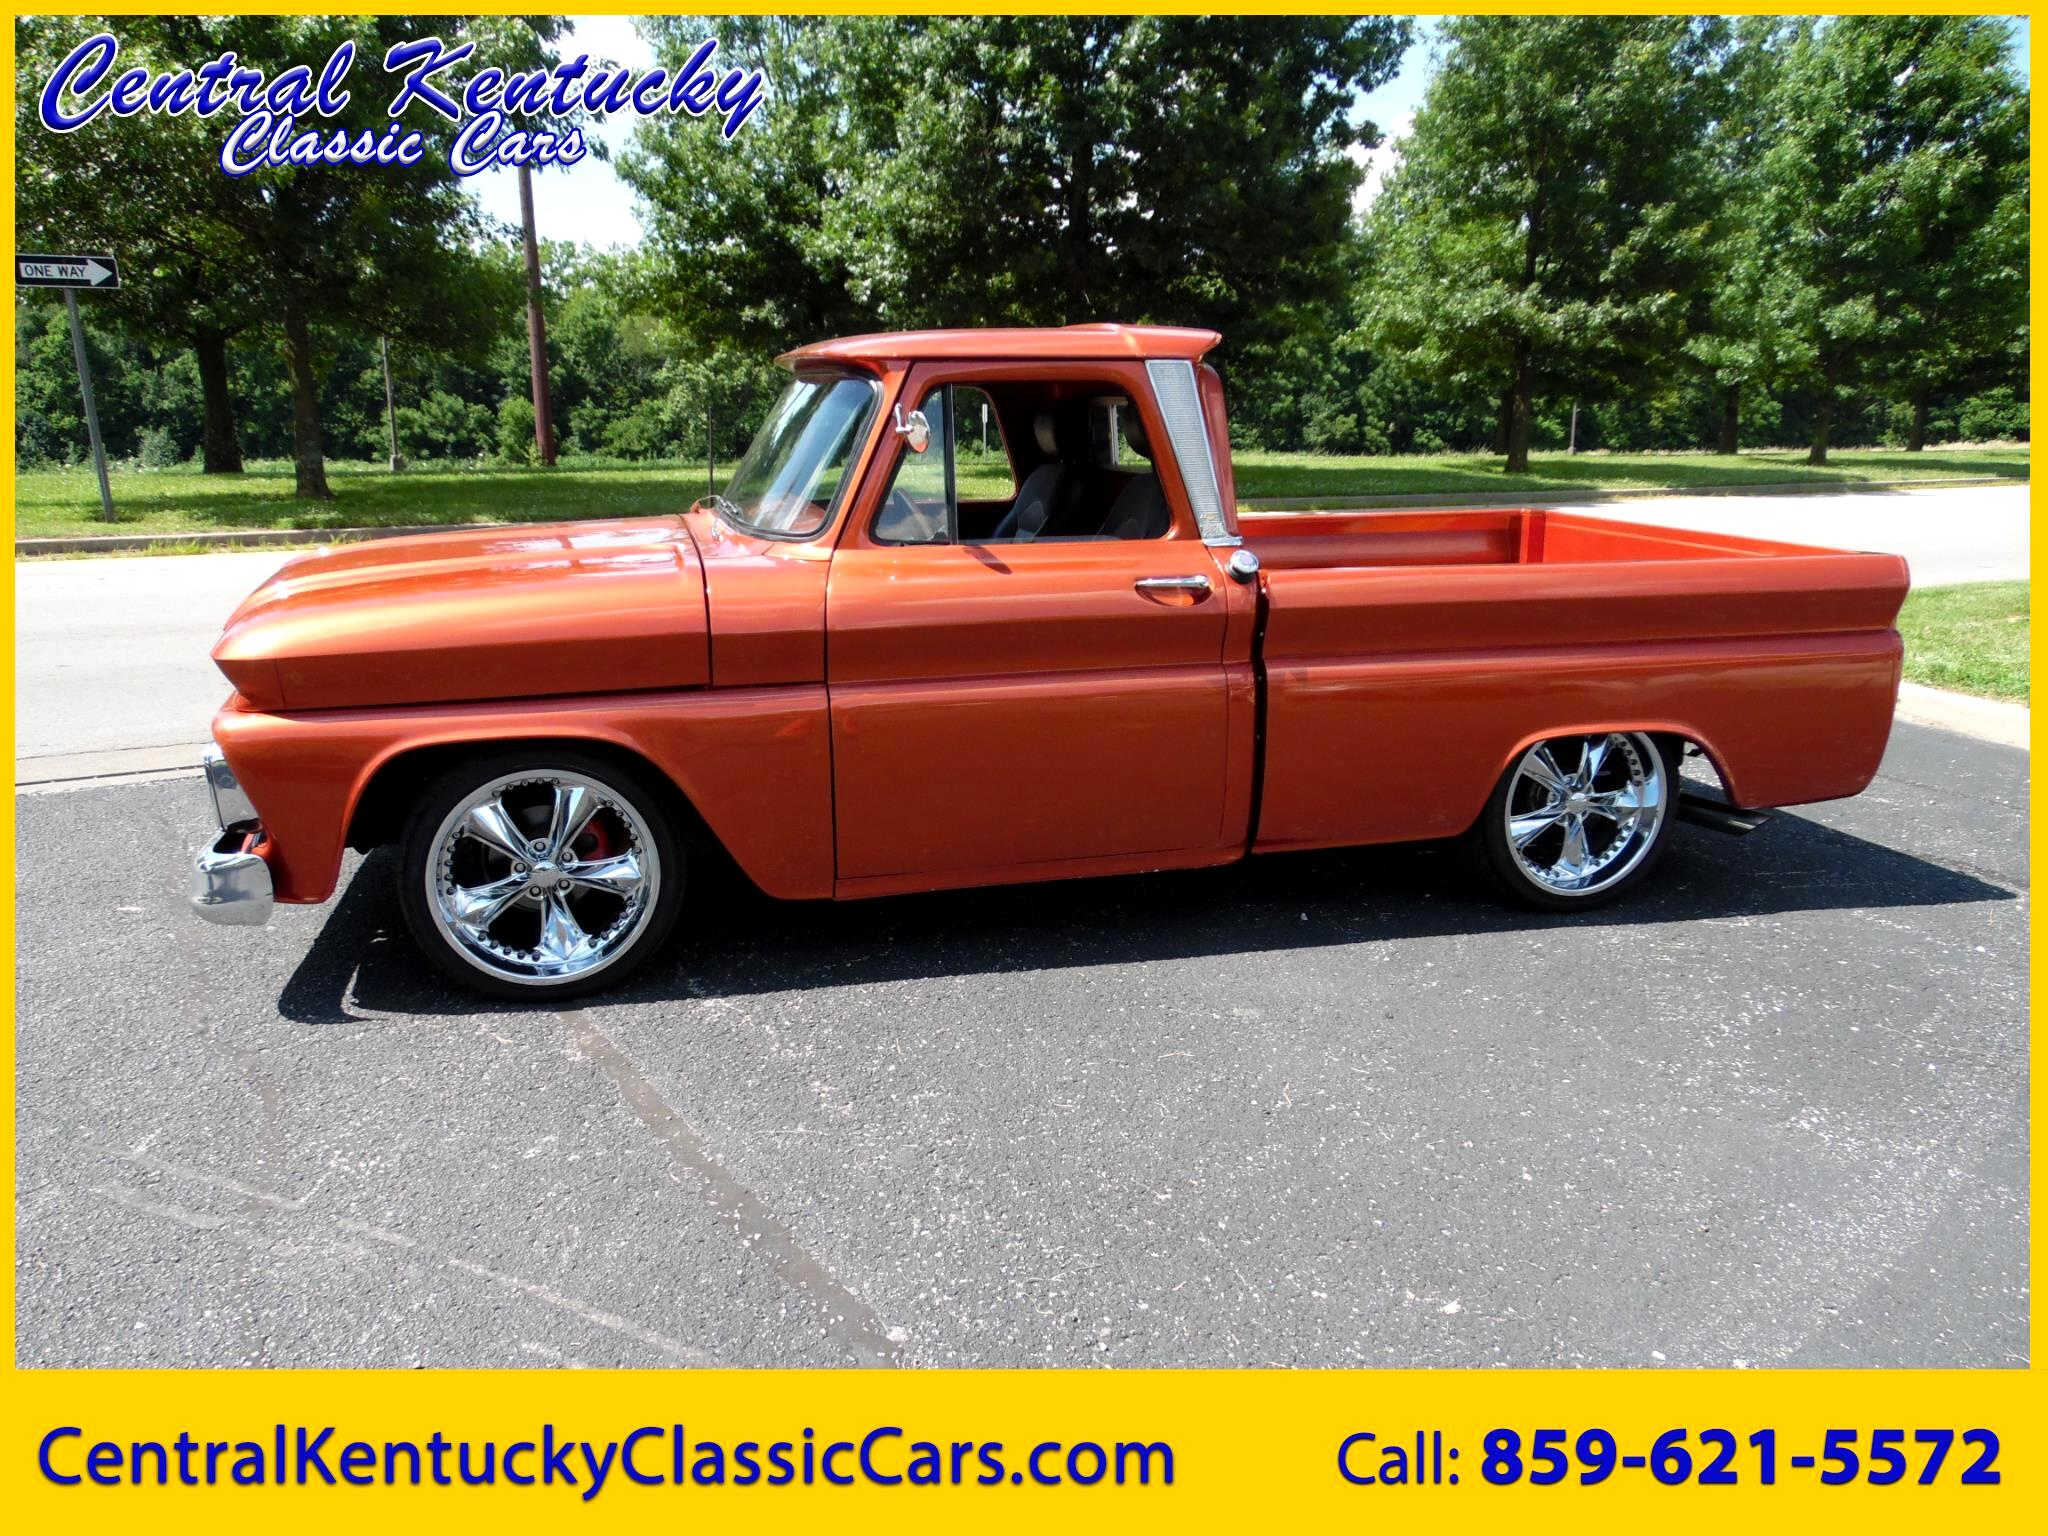 Chevy Dealer Lexington Ky >> Used 1966 Chevrolet C10 Sold in Paris KY 40361 Central Kentucky Classic Cars